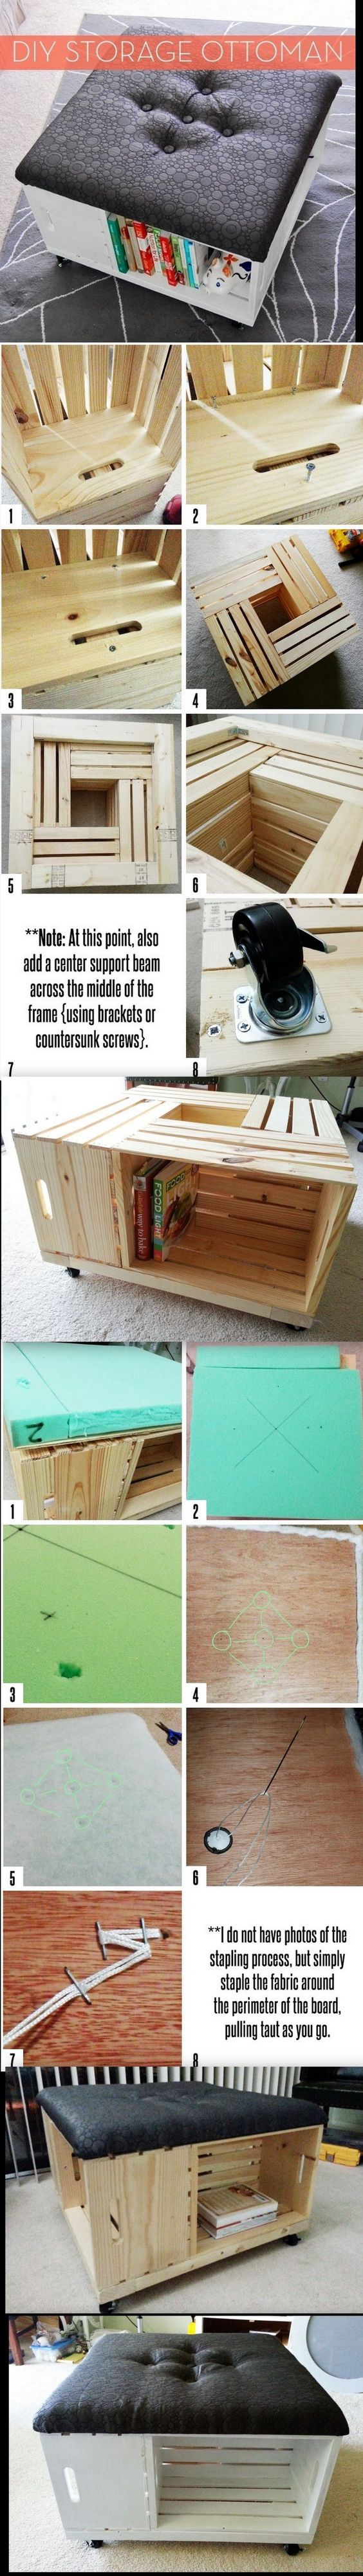 make this bigger crates on the sides & smaller on the ends. Bigger shelves for MORE books!